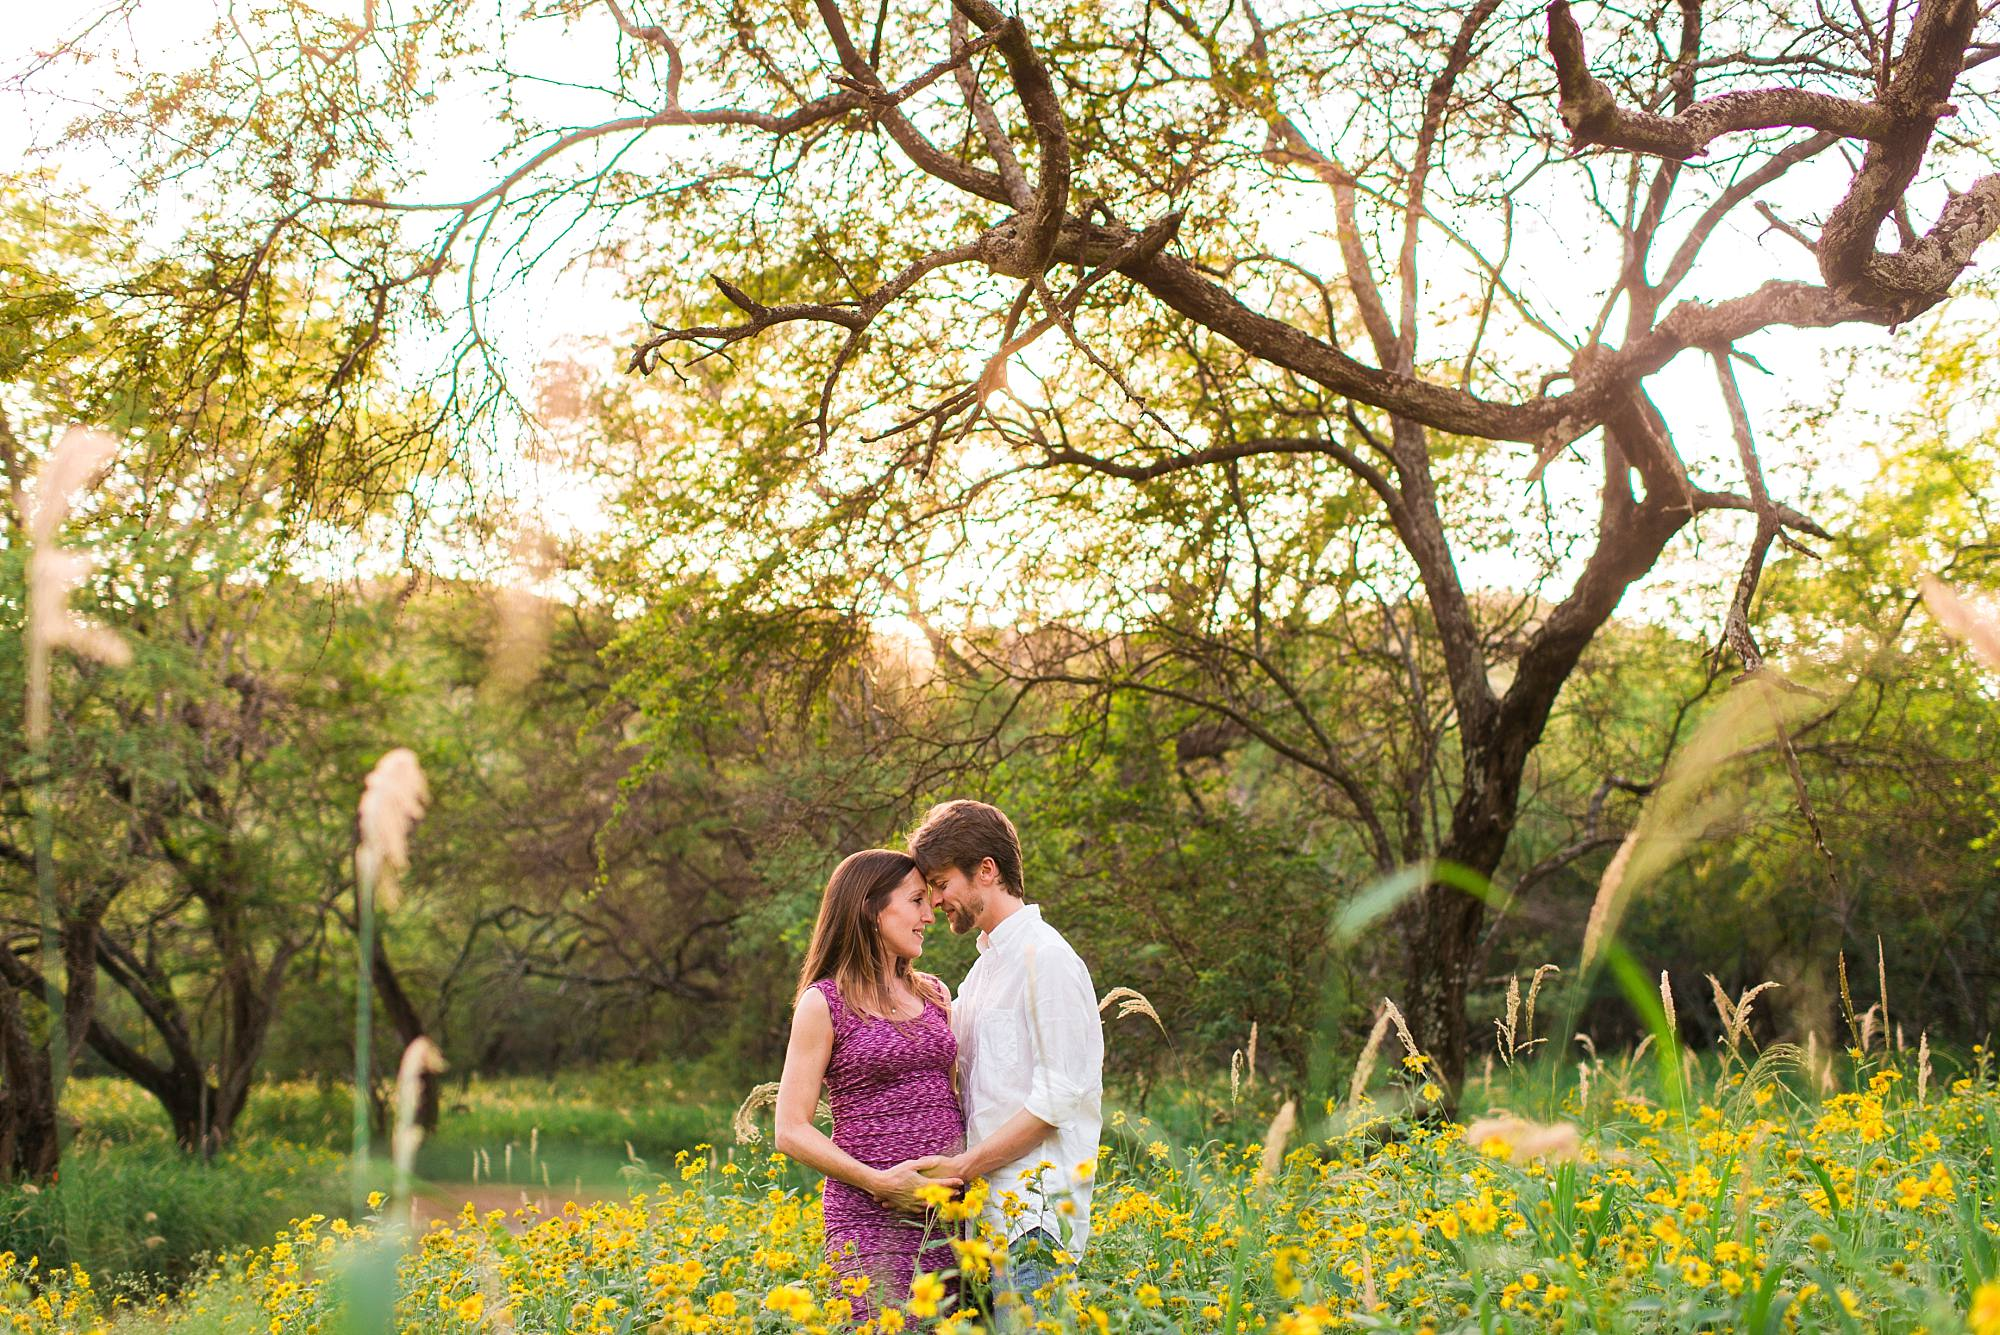 couple standing head to head in yellow flowers with knotty trees behind them, cradling pregnant stomach